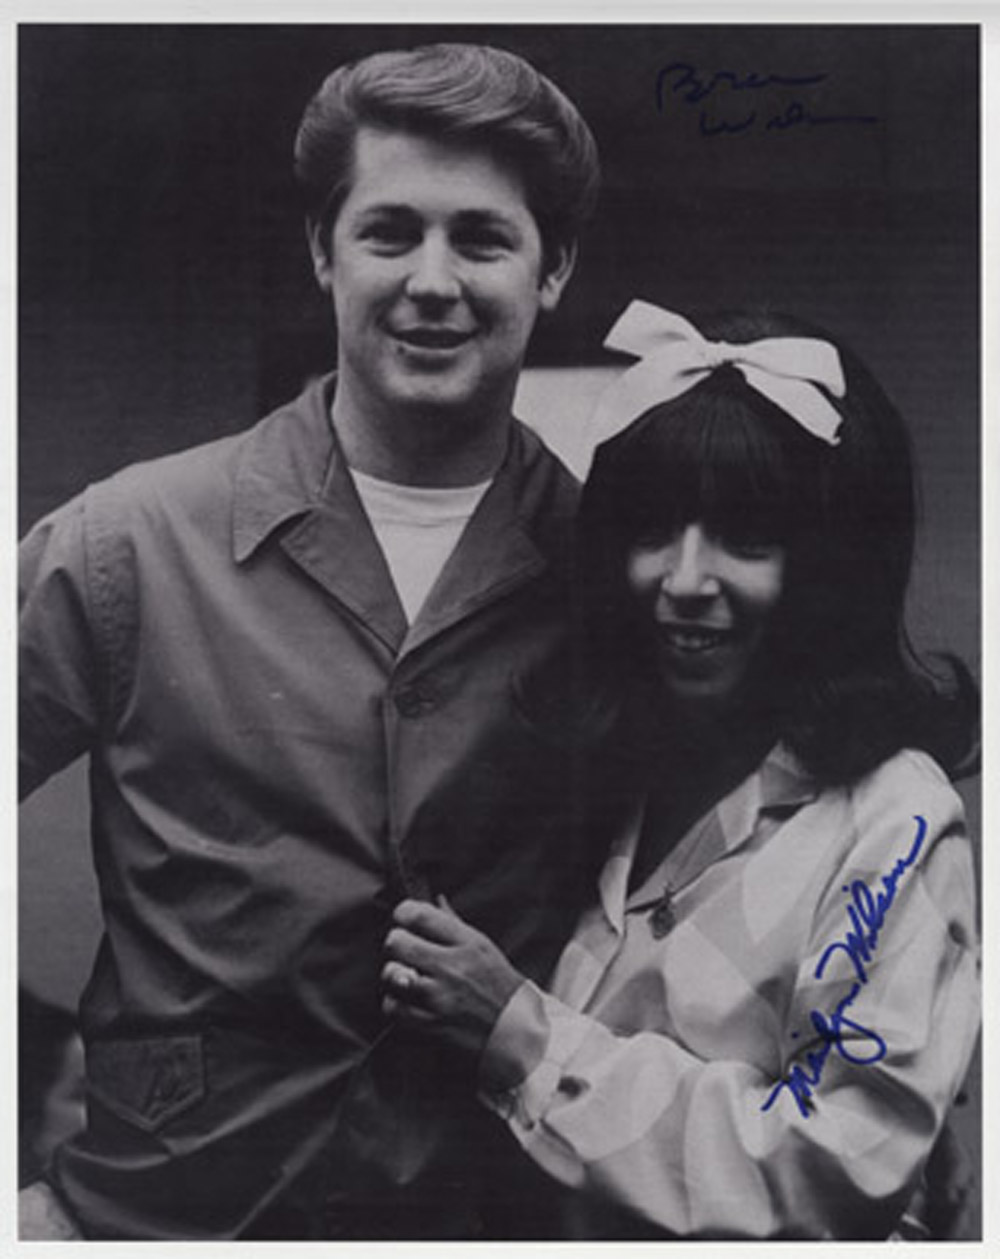 Beach Boys Brian Wilson Signed Photograph Hover To Zoom